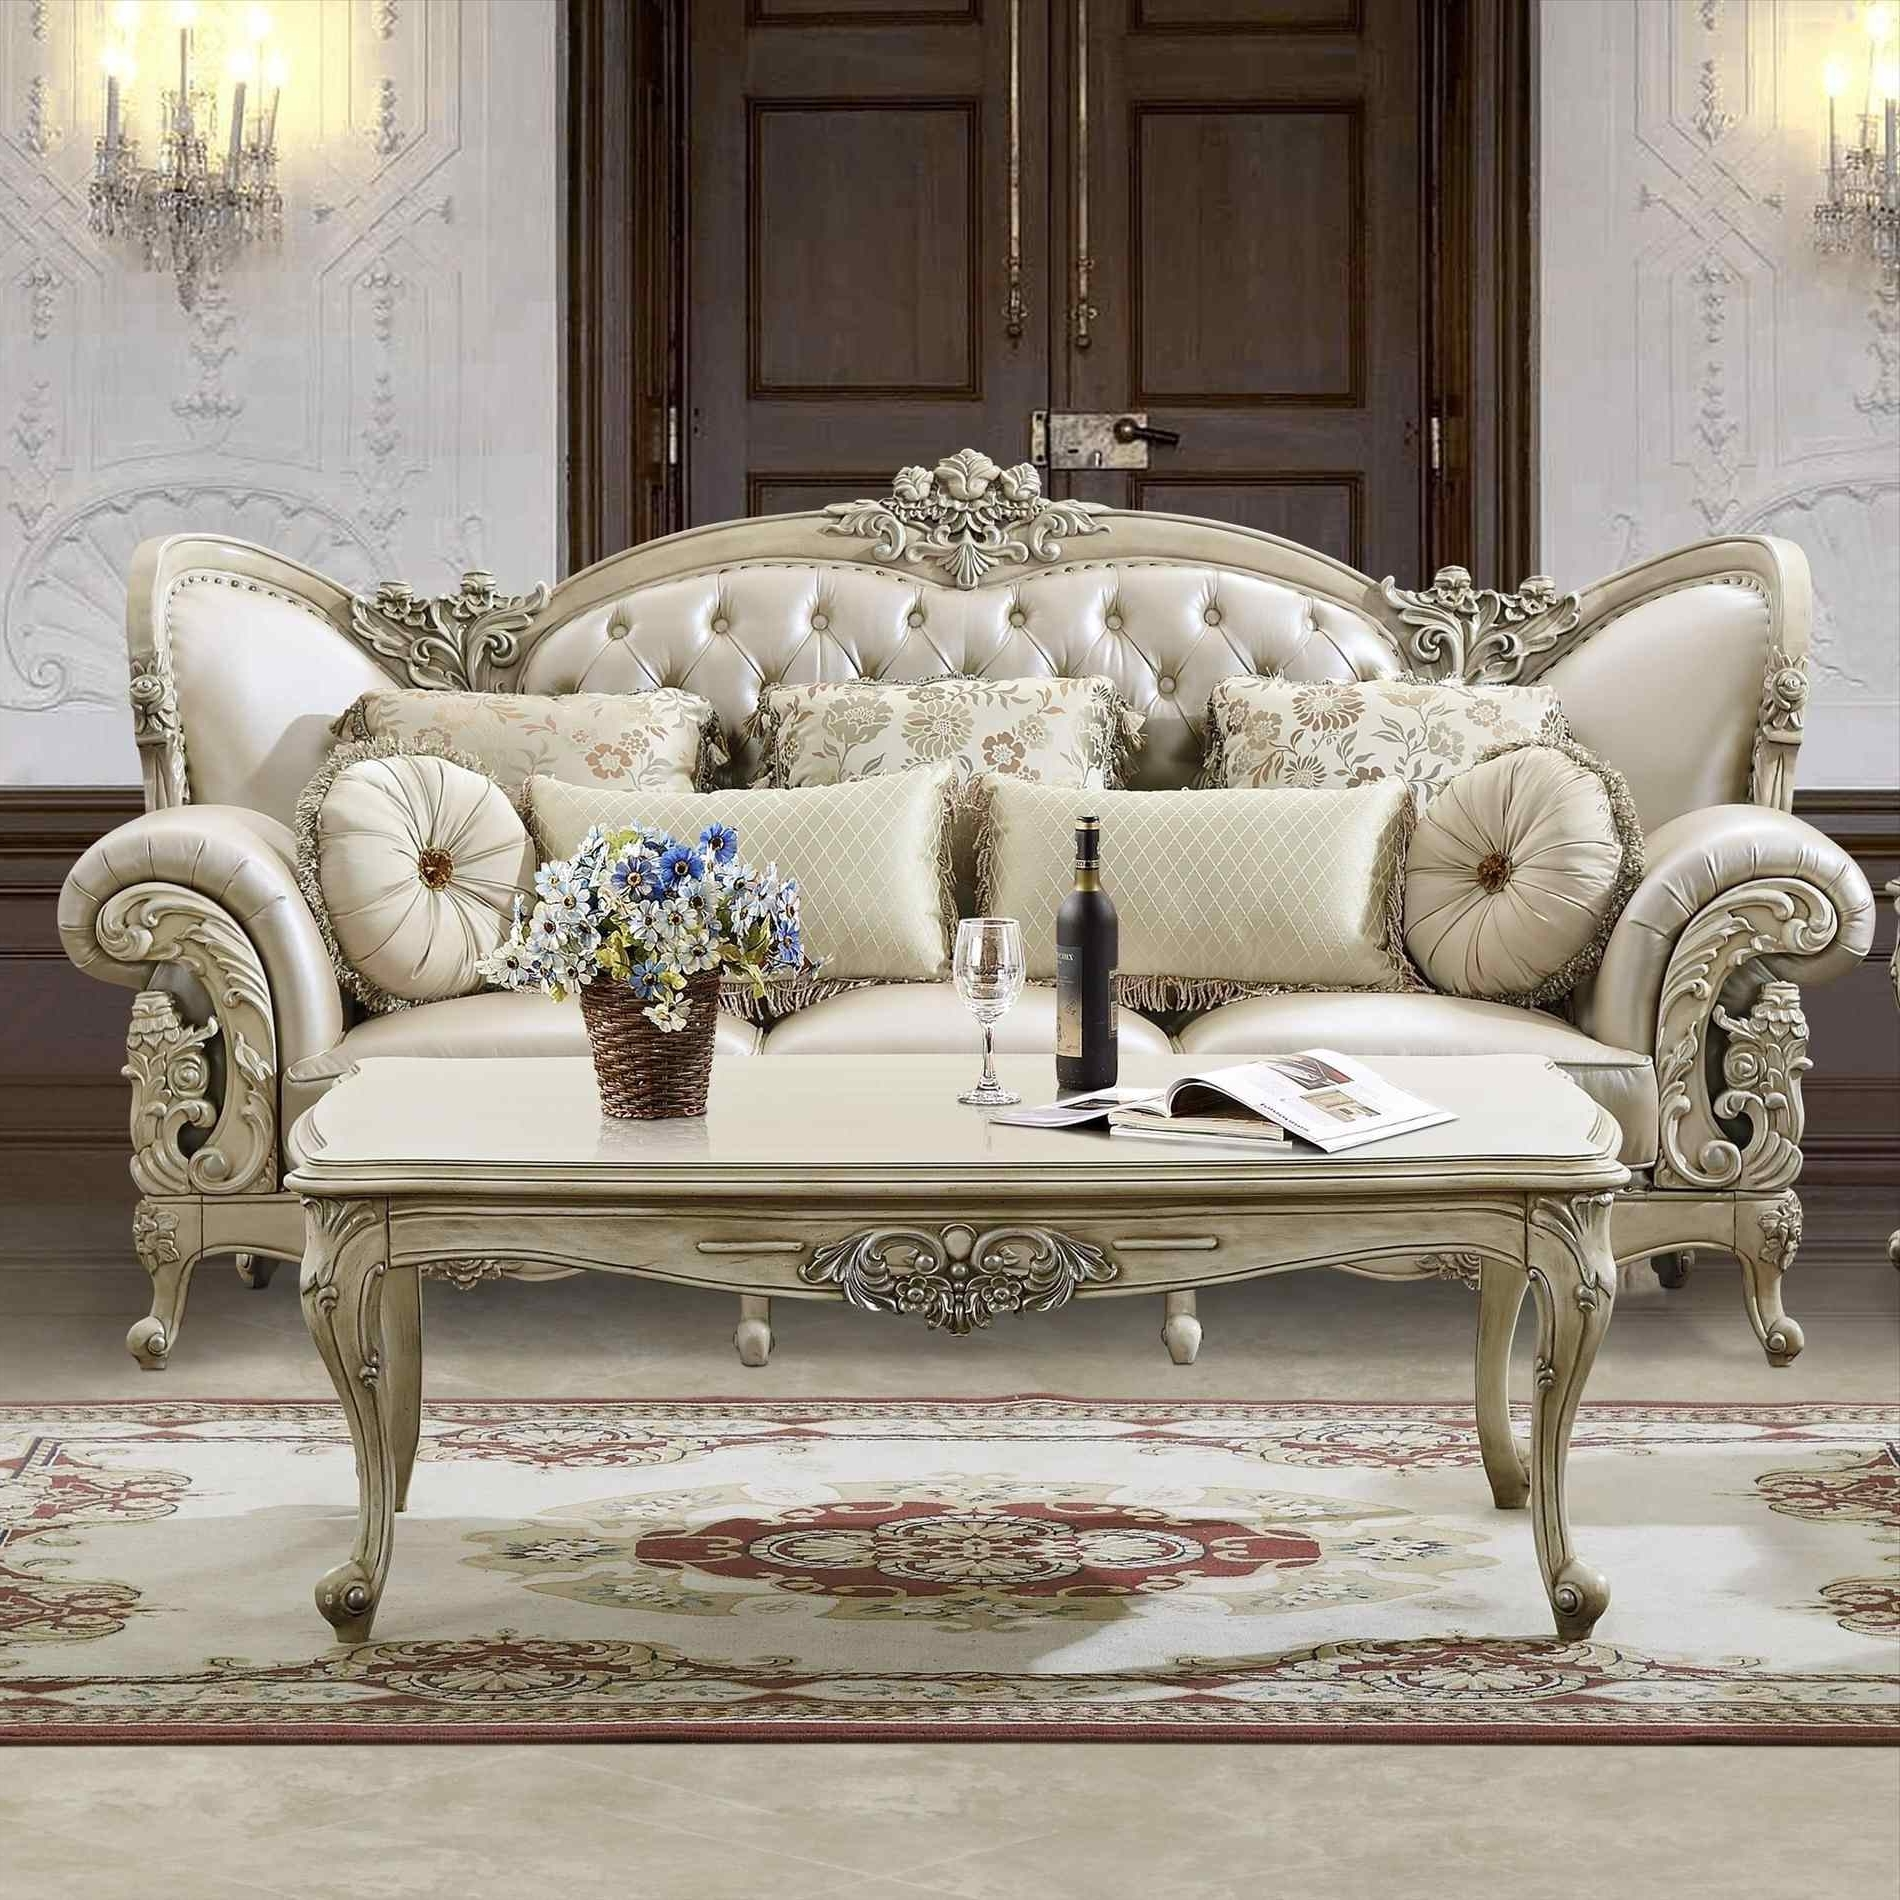 Most Recently Released Sofa : Sofa Aldie Nuvella Queen Living Traditional Fabric Sofas Inside Traditional Fabric Sofas (View 6 of 20)